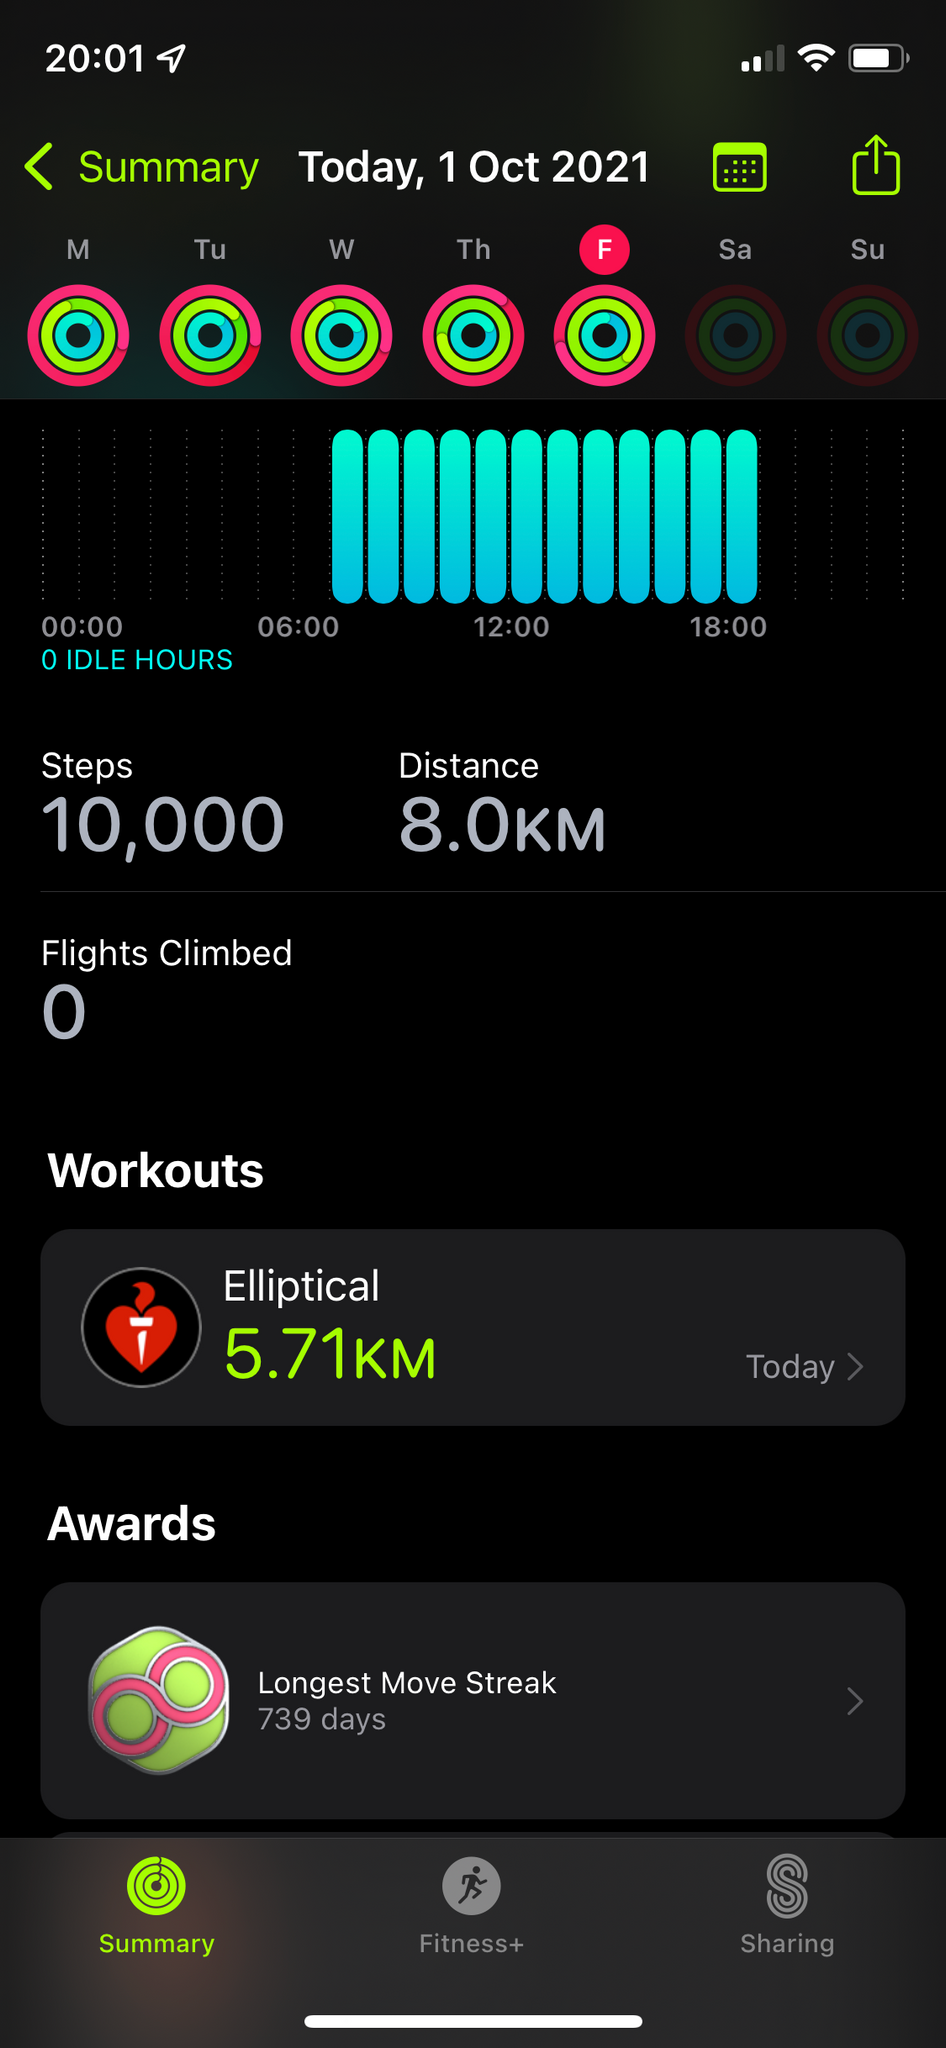 A photo of the iOS Fitness app showing I've done EXACTLY 10,000 steps and 8.0km.